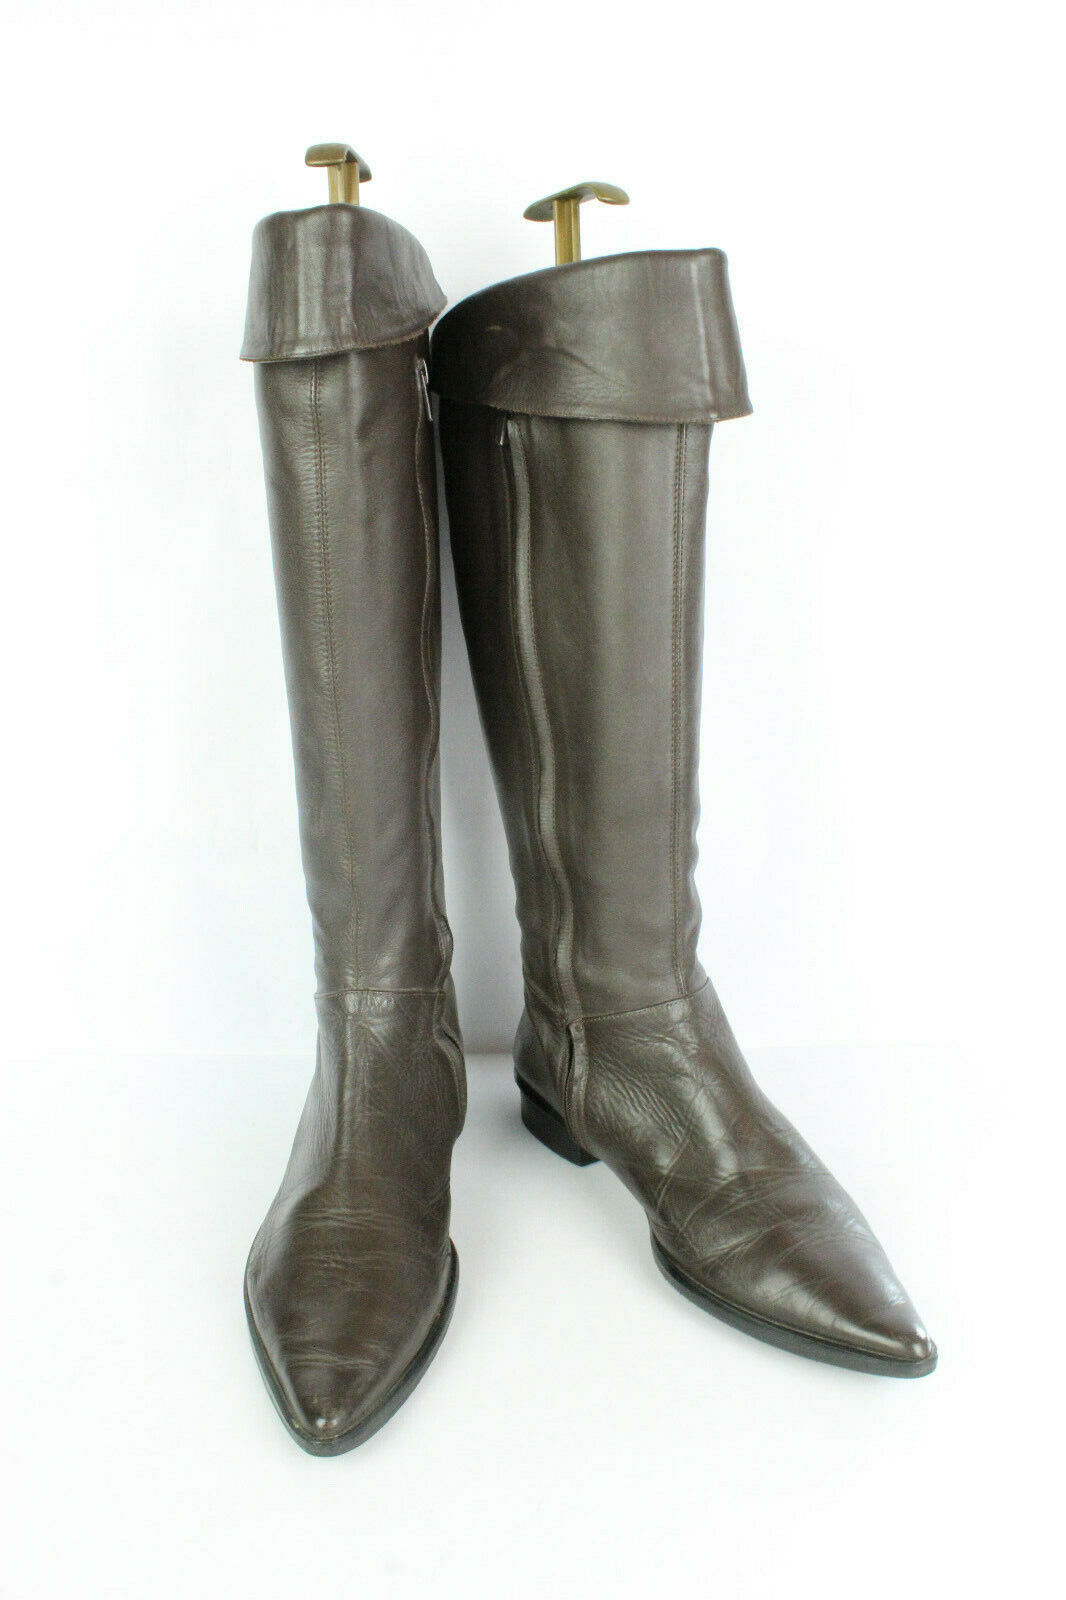 Boots Heyraud Brown Leather Farmer Outfit 12 UK 6.5 Very Good Condition